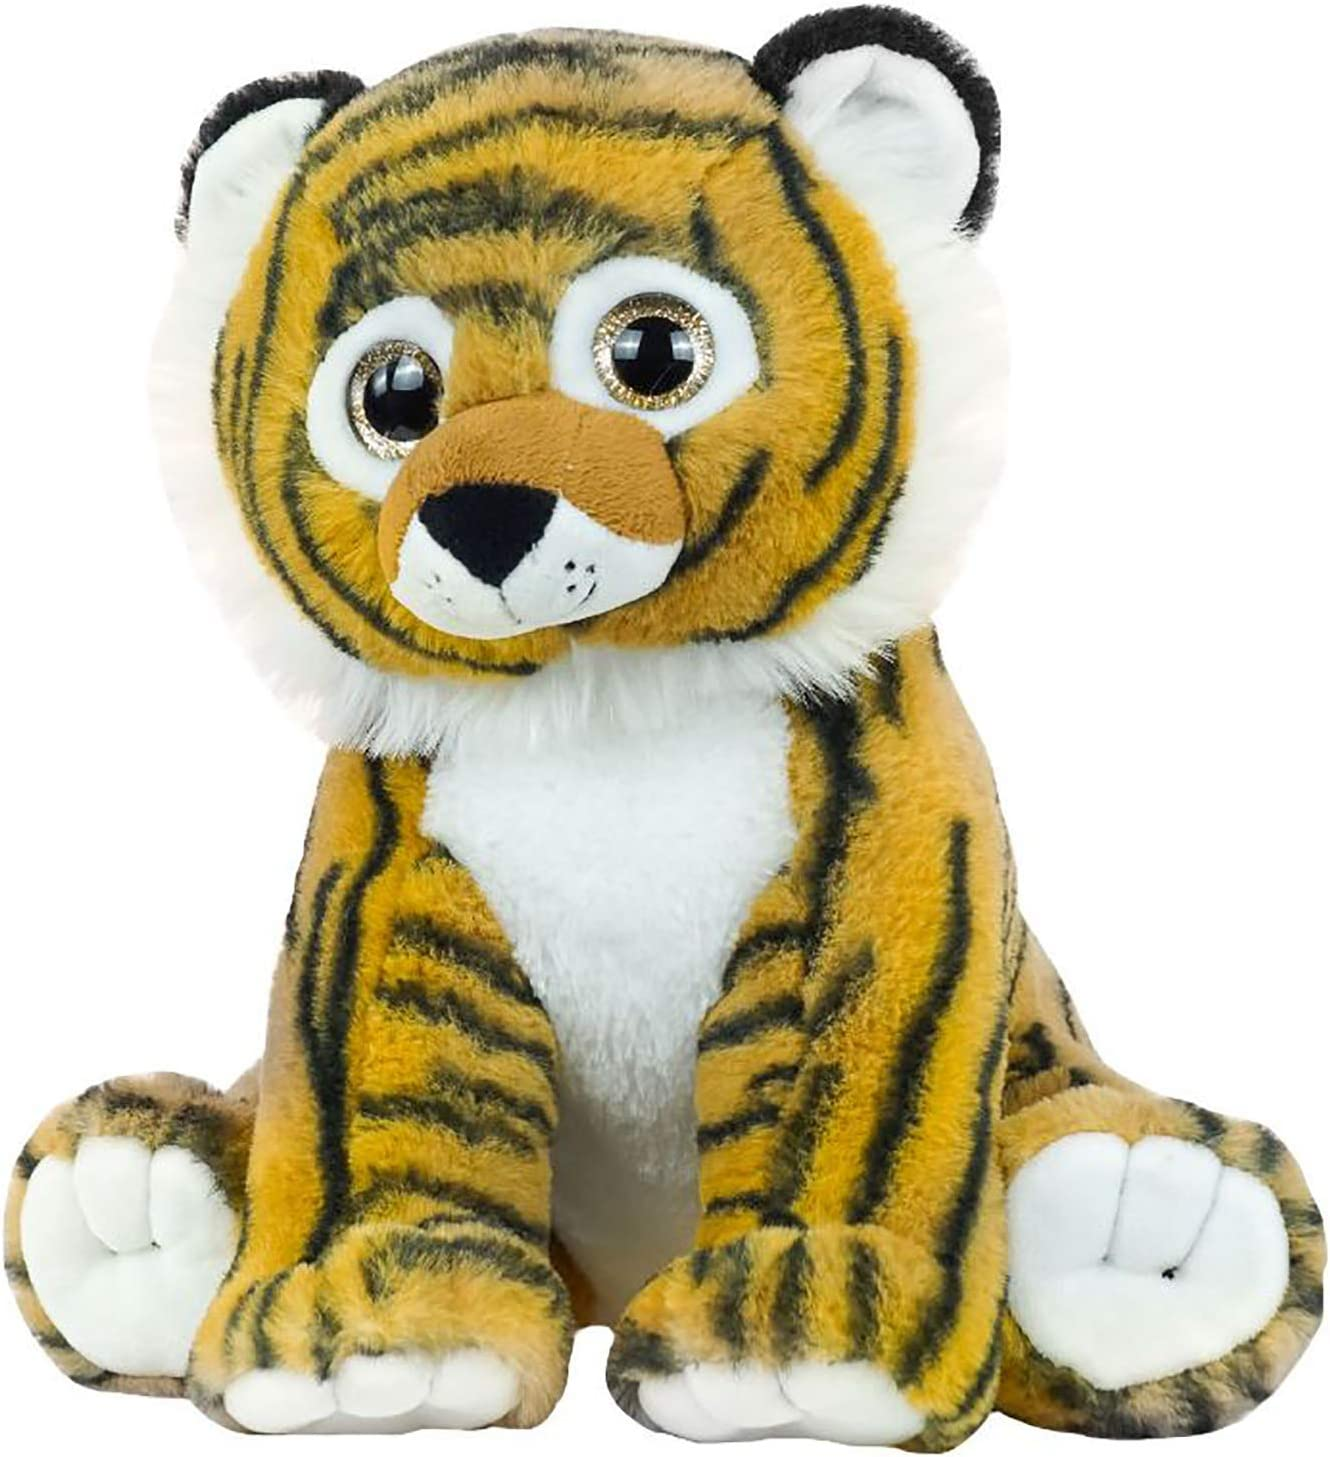 Realistic Plush Animal Tiger Yellow White Tiger Hairy Soft Stuffed Toys Pillow